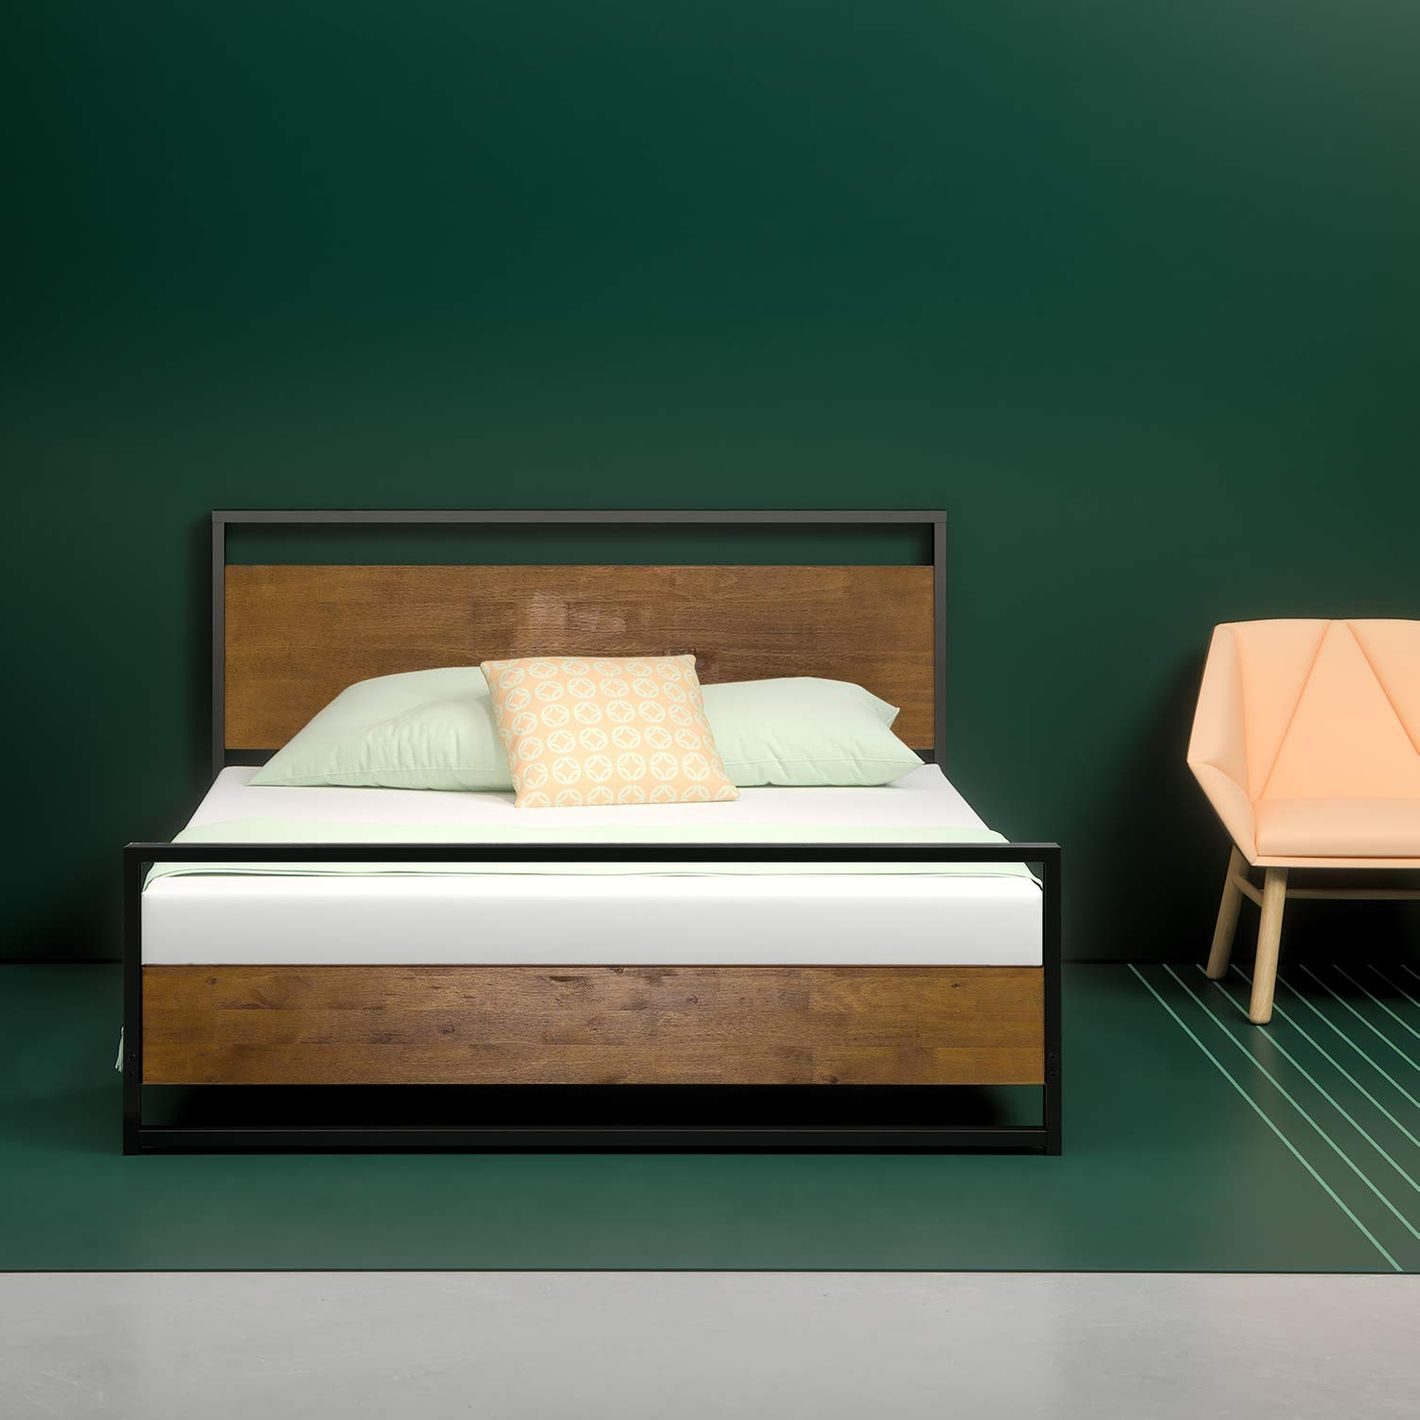 Zinus Suzanne Metal and Wood Platform Bed with Headboard and Footboard, Queen